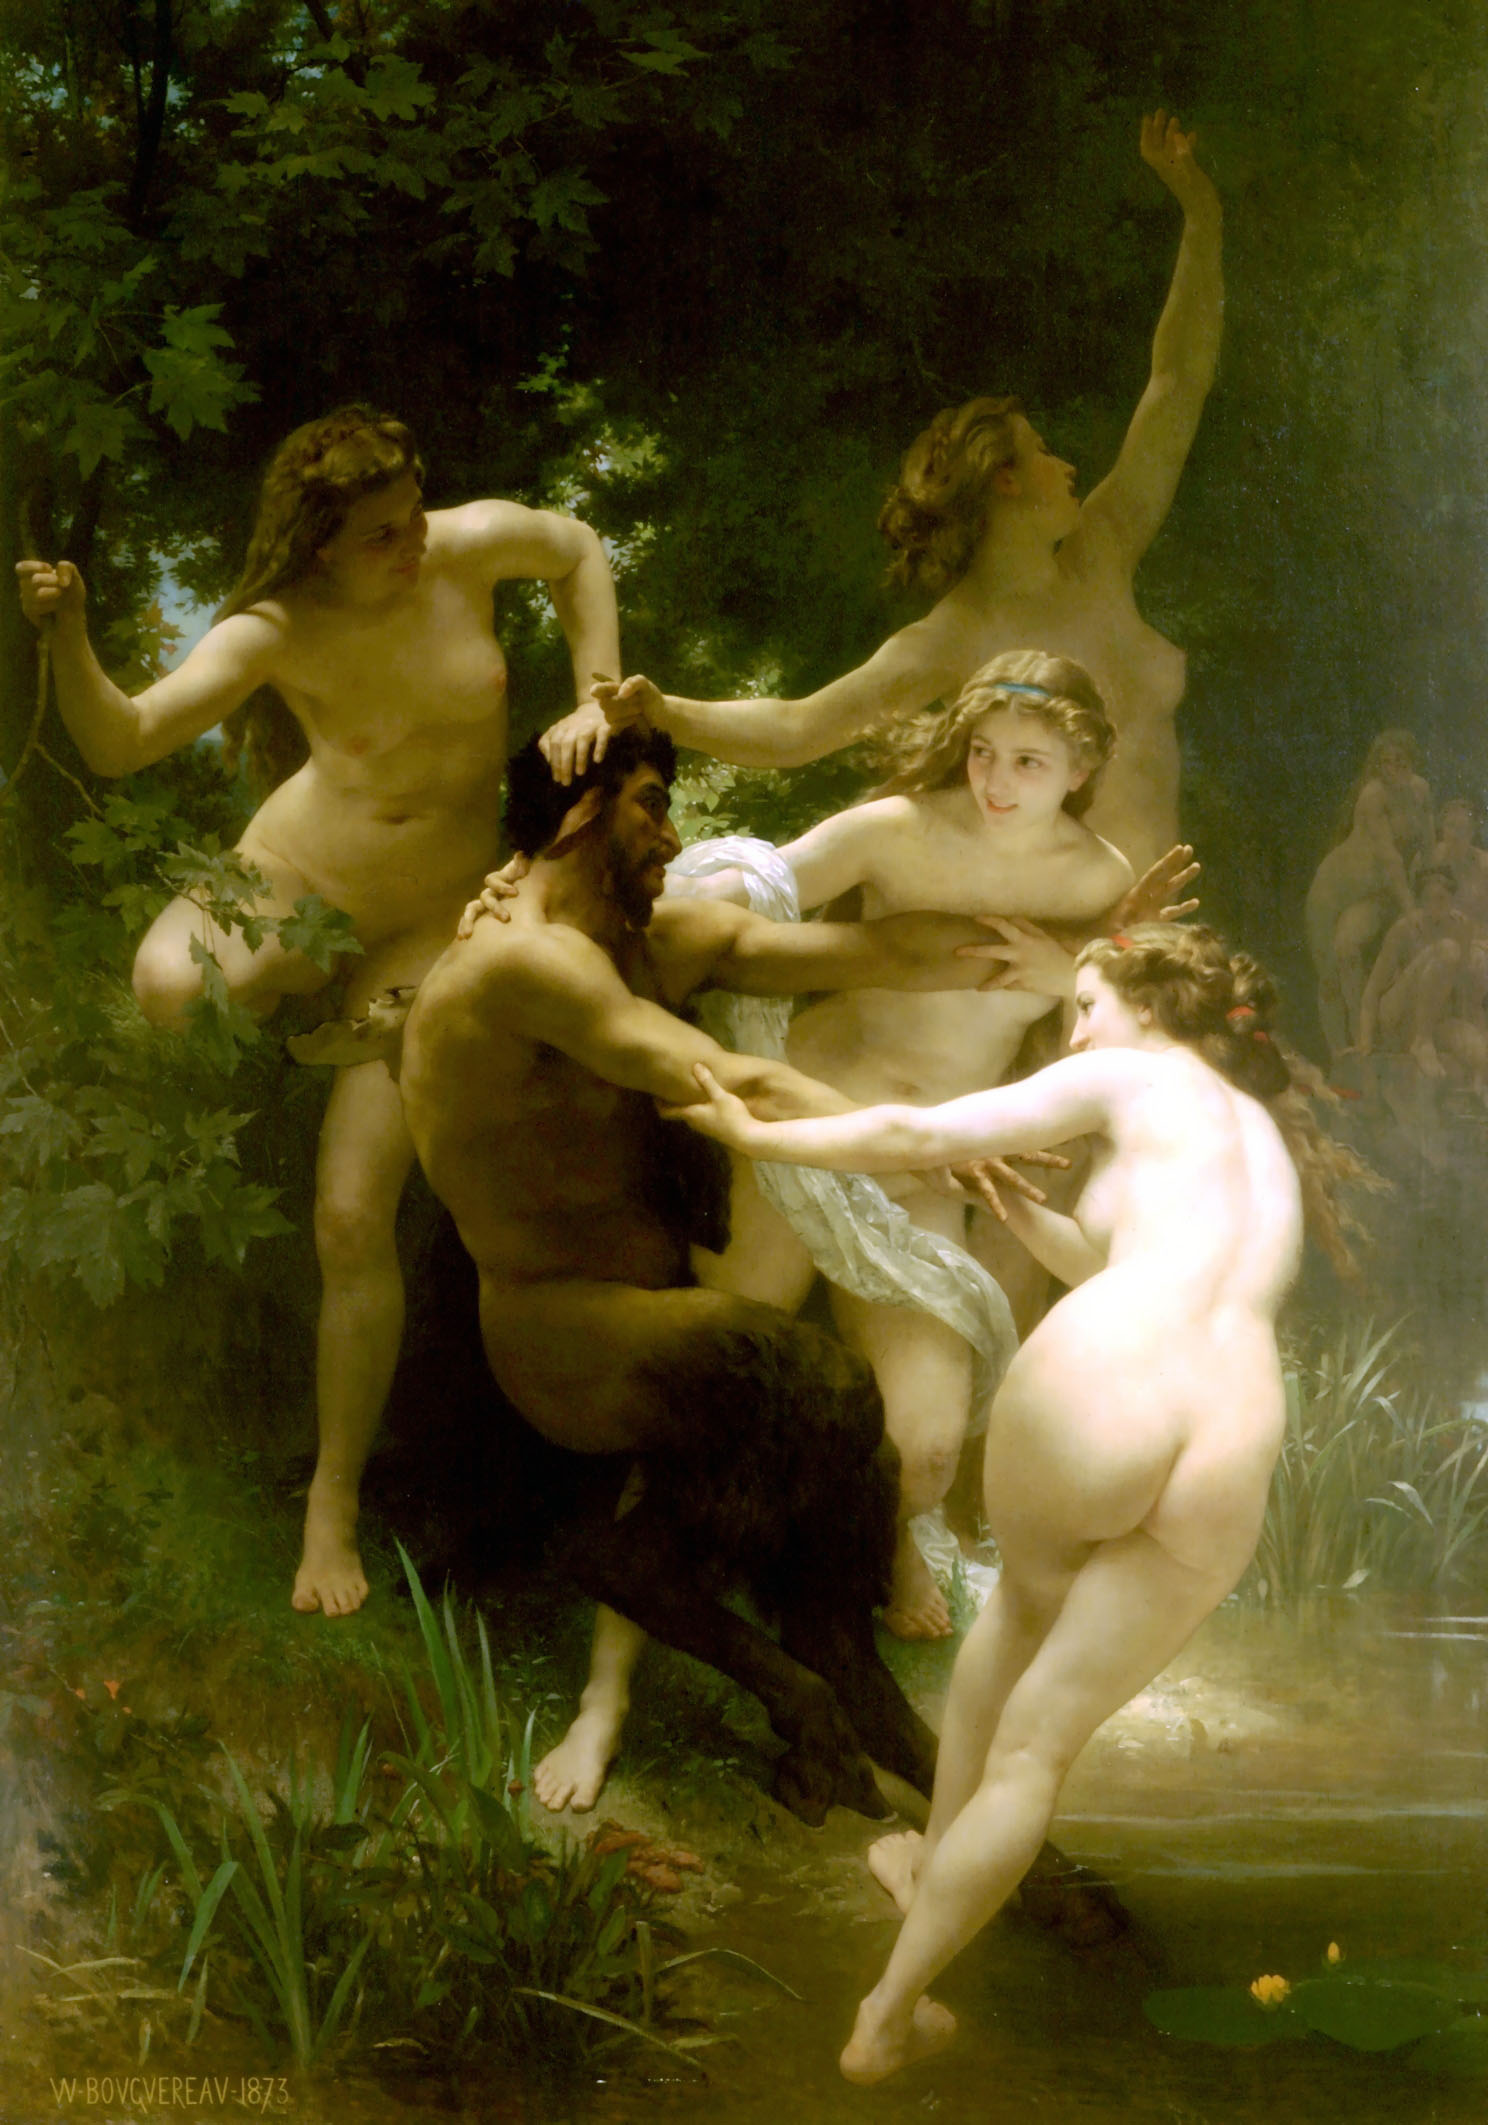 William Bouguereau (1825-1905) Nymphes et sátira [Ninfas e Sátiro] óleo sobre tela, 1873 102 1/4 x 70 3/4 polegadas (260 x 180 cm) Sterling e Francine Clark Art Institute, Williamstown